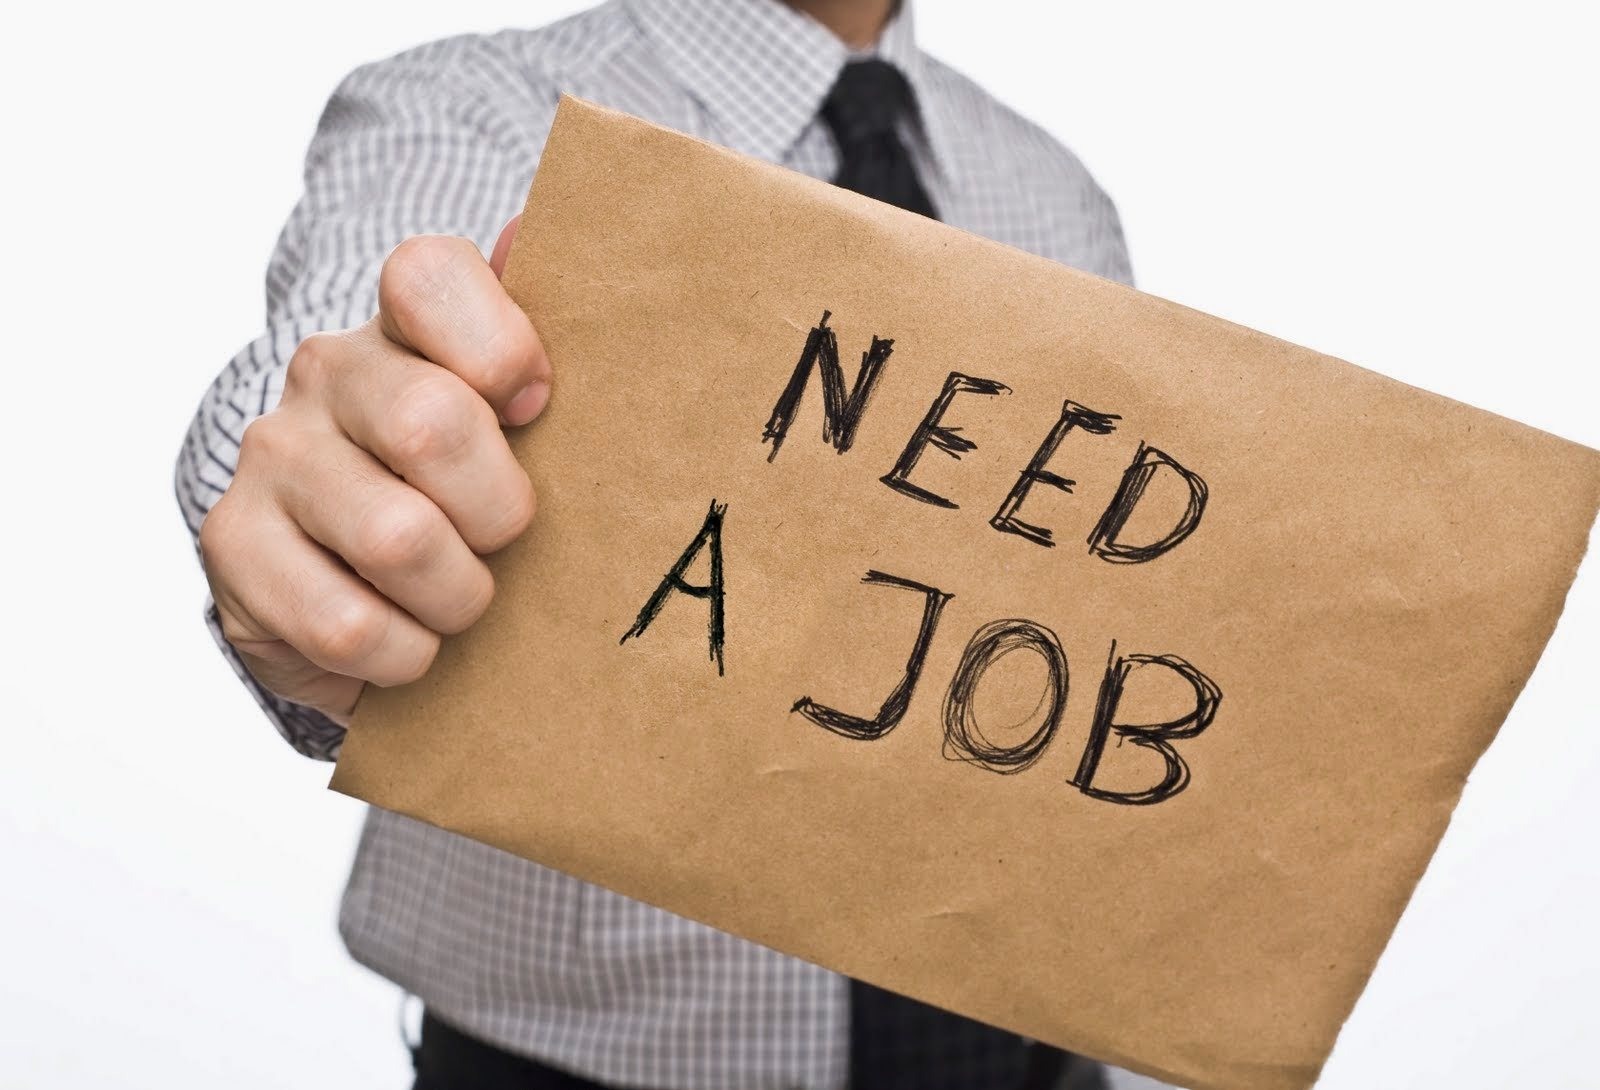 Top 5 Tips to find a new Job